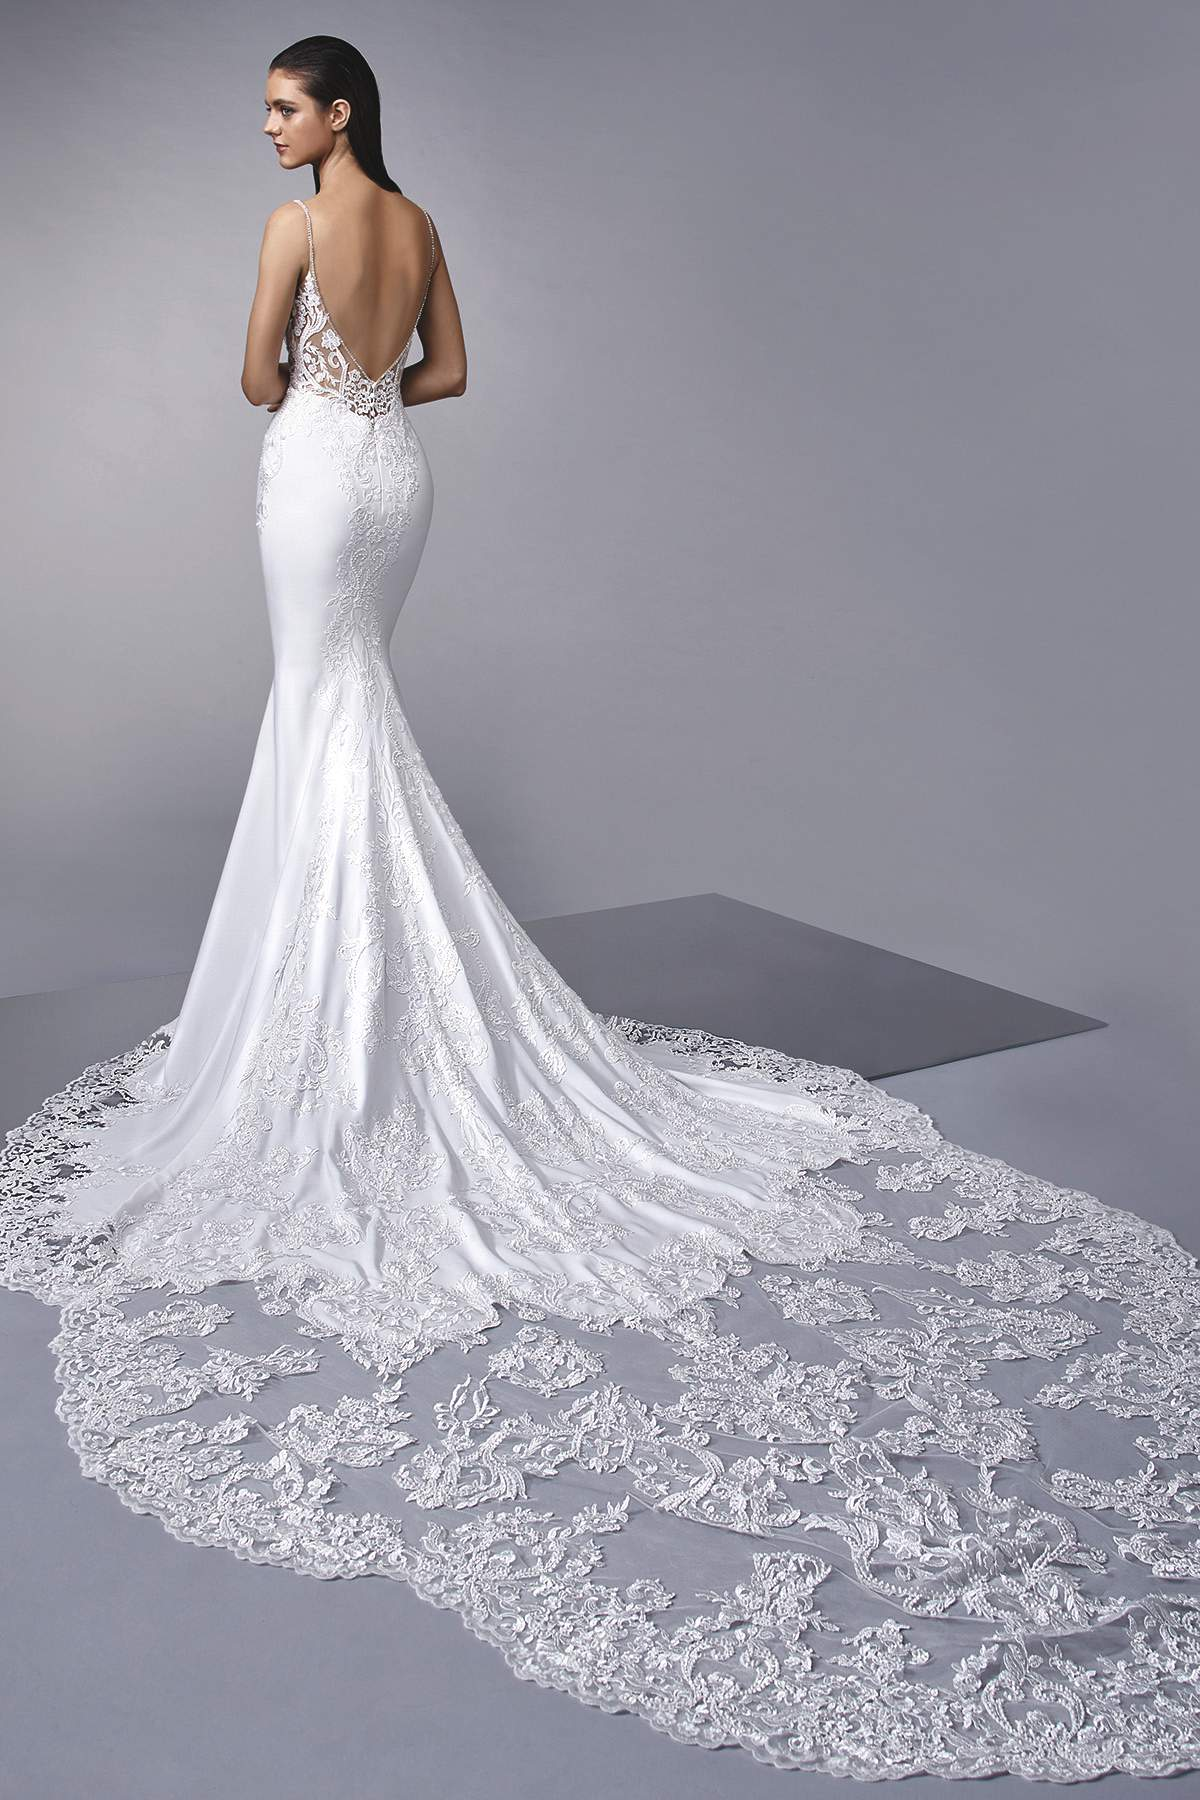 c7456087a62c McKinley by Enzoani - Find Your Dream Dress